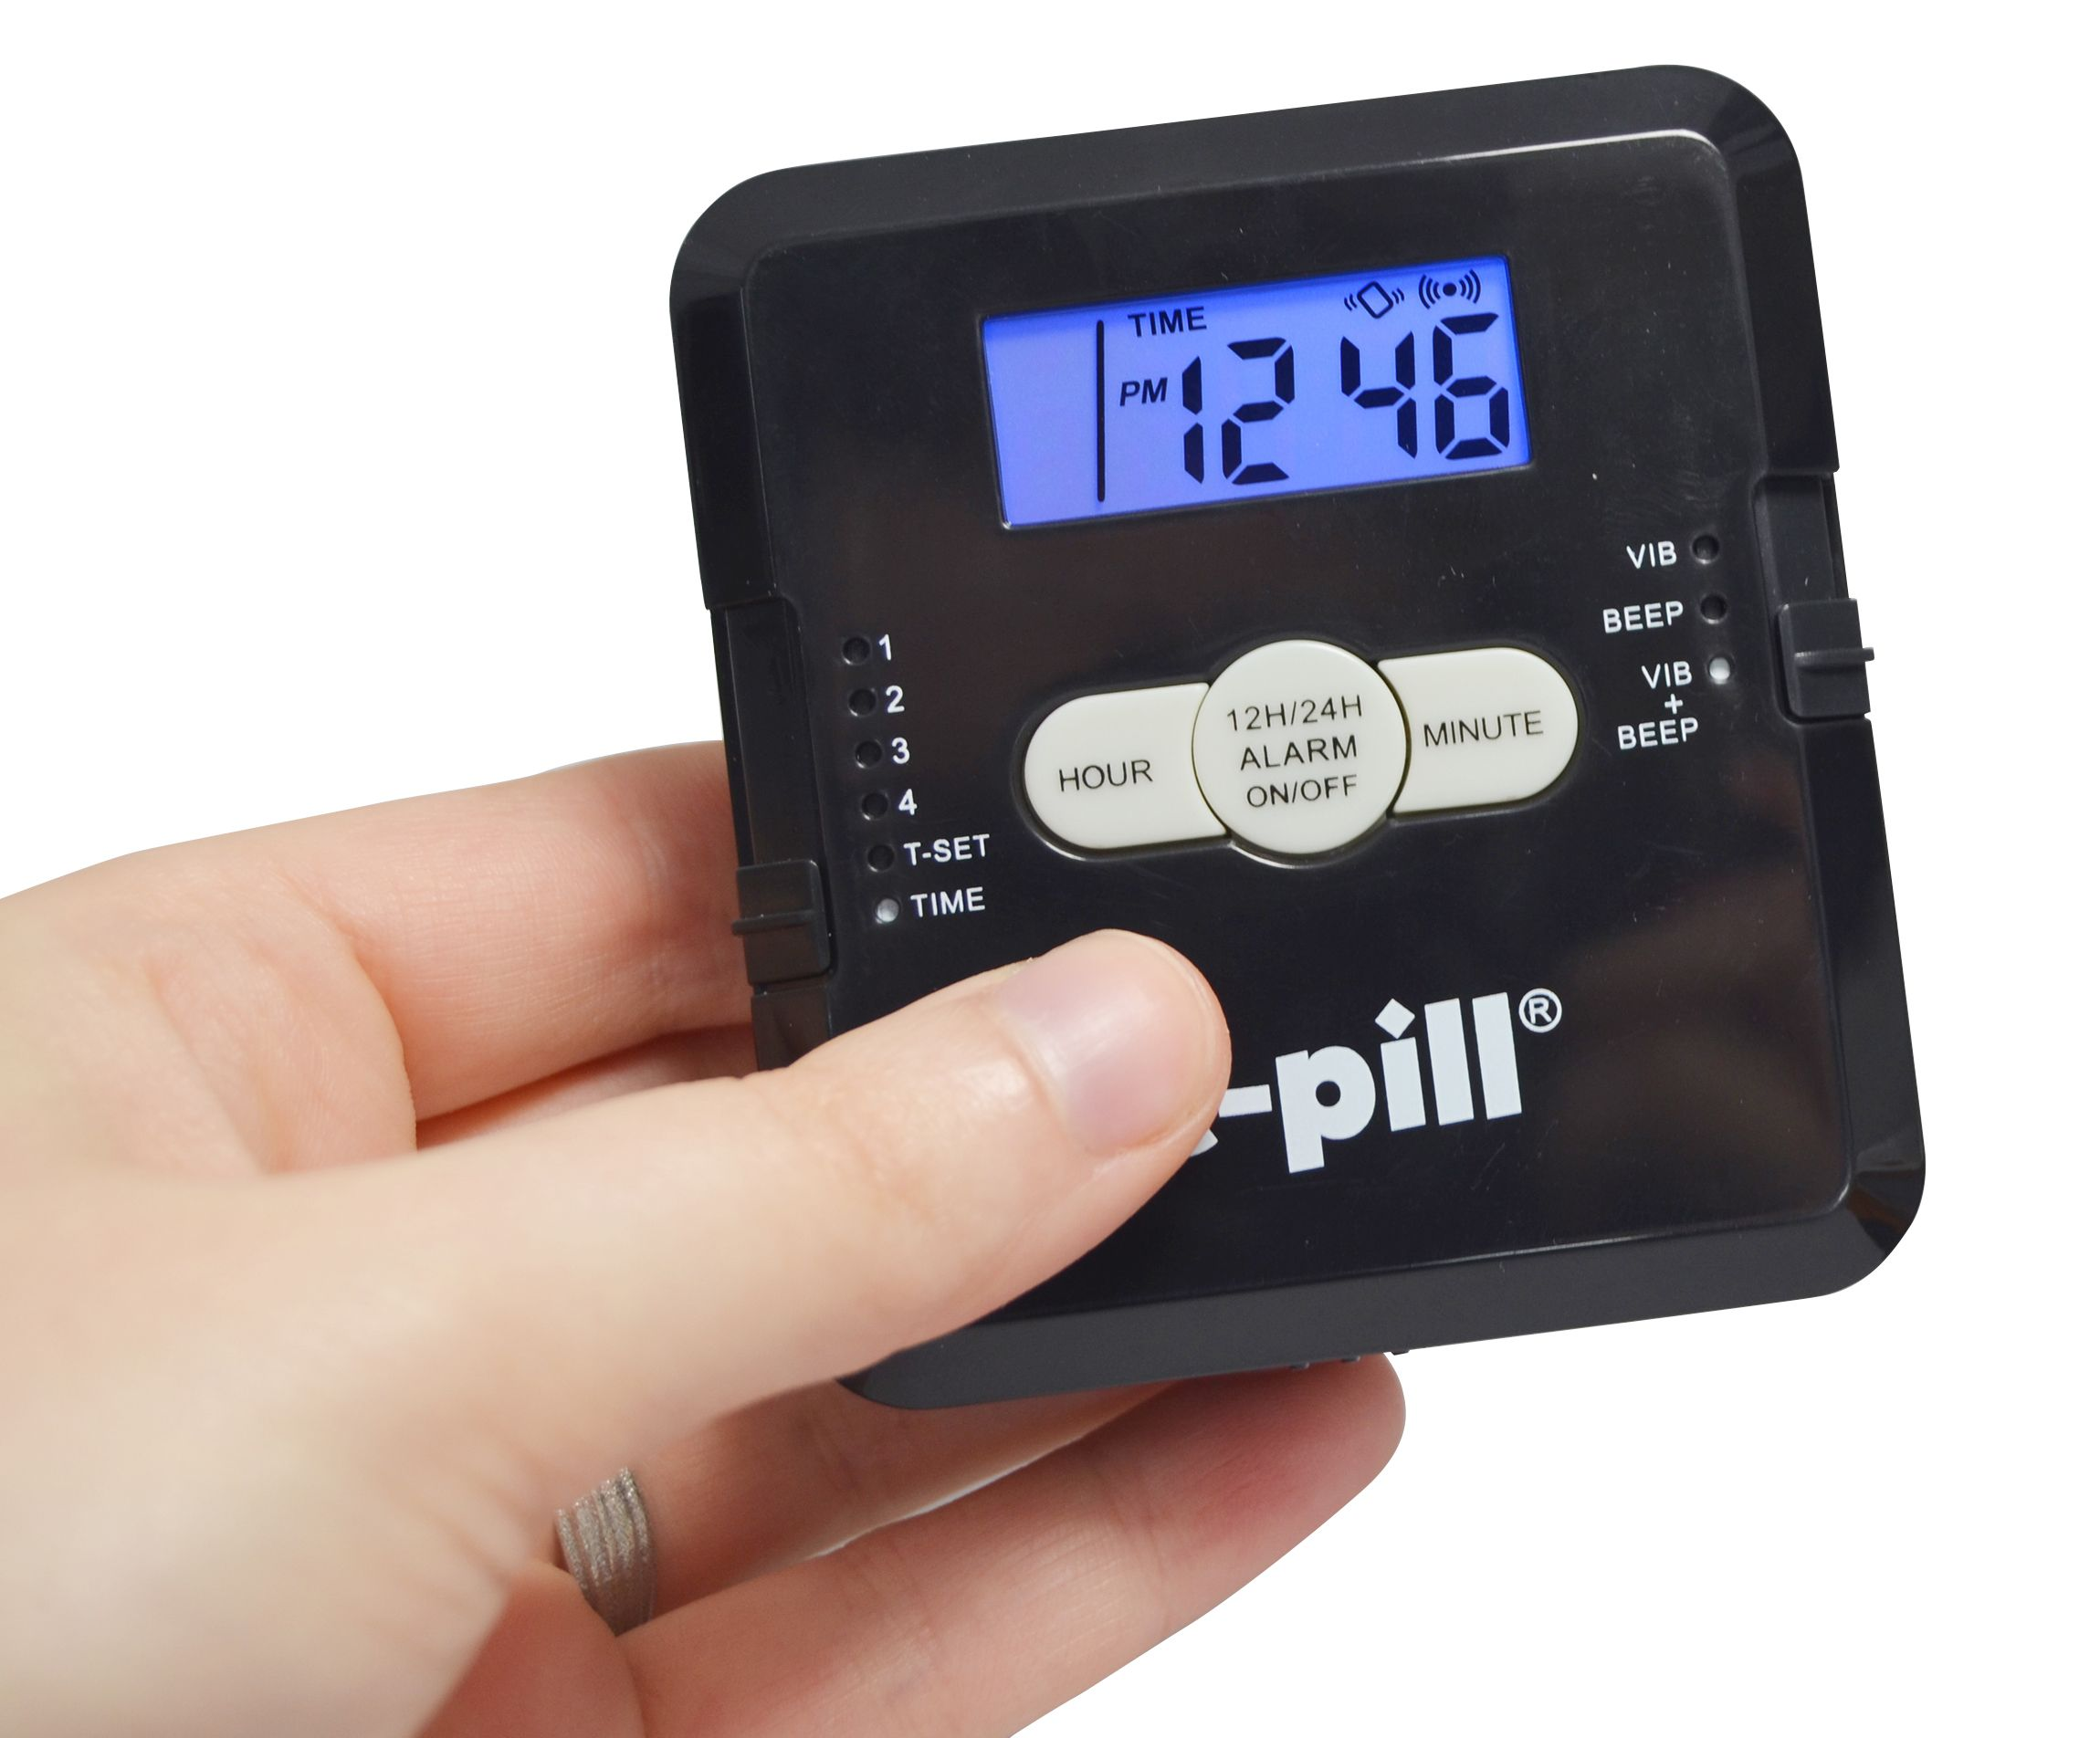 epill.com the 4 Alarm Vibrating Pill Box is now available in BLACK!